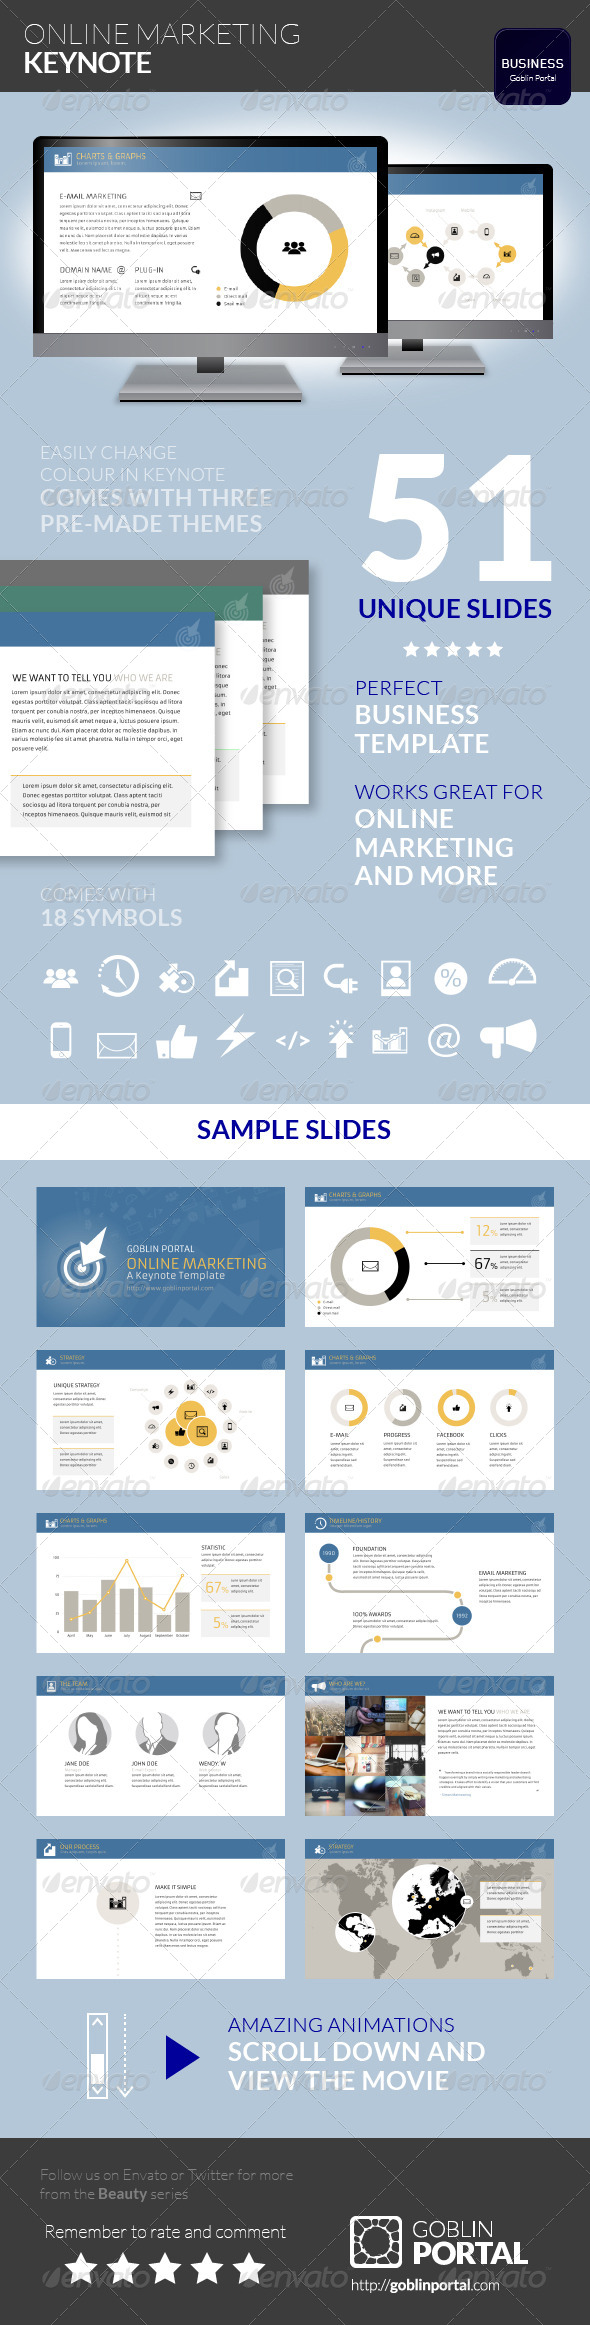 GraphicRiver Online Marketing Keynote Template 7773735